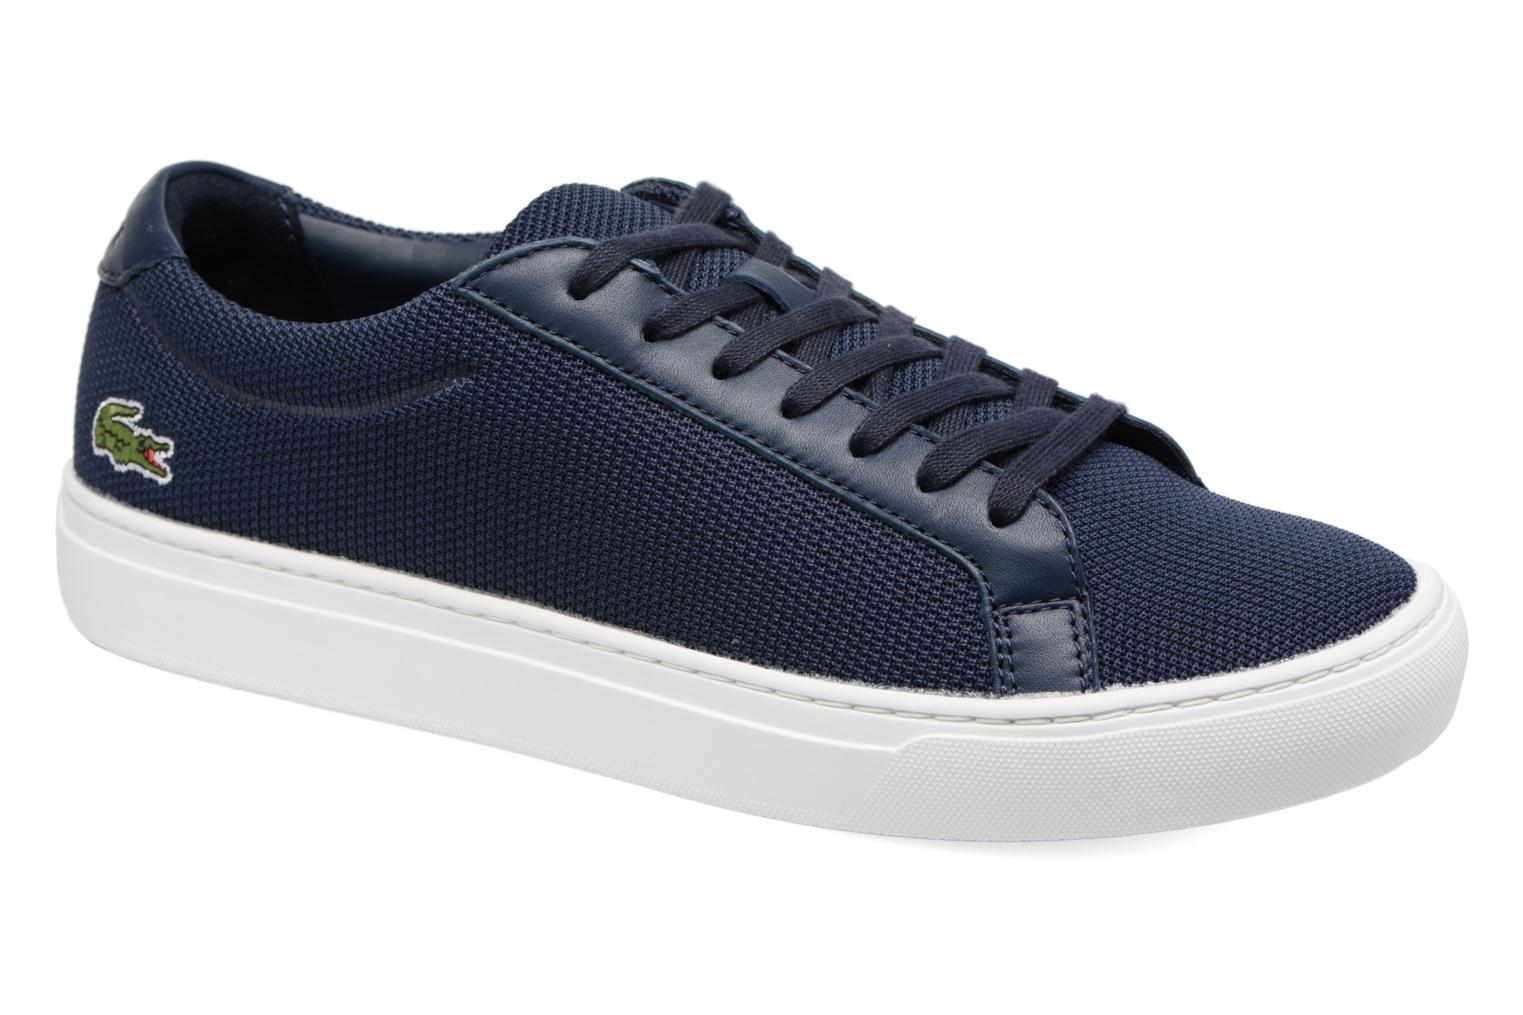 sneakers-l1212-bl-2-by-lacoste